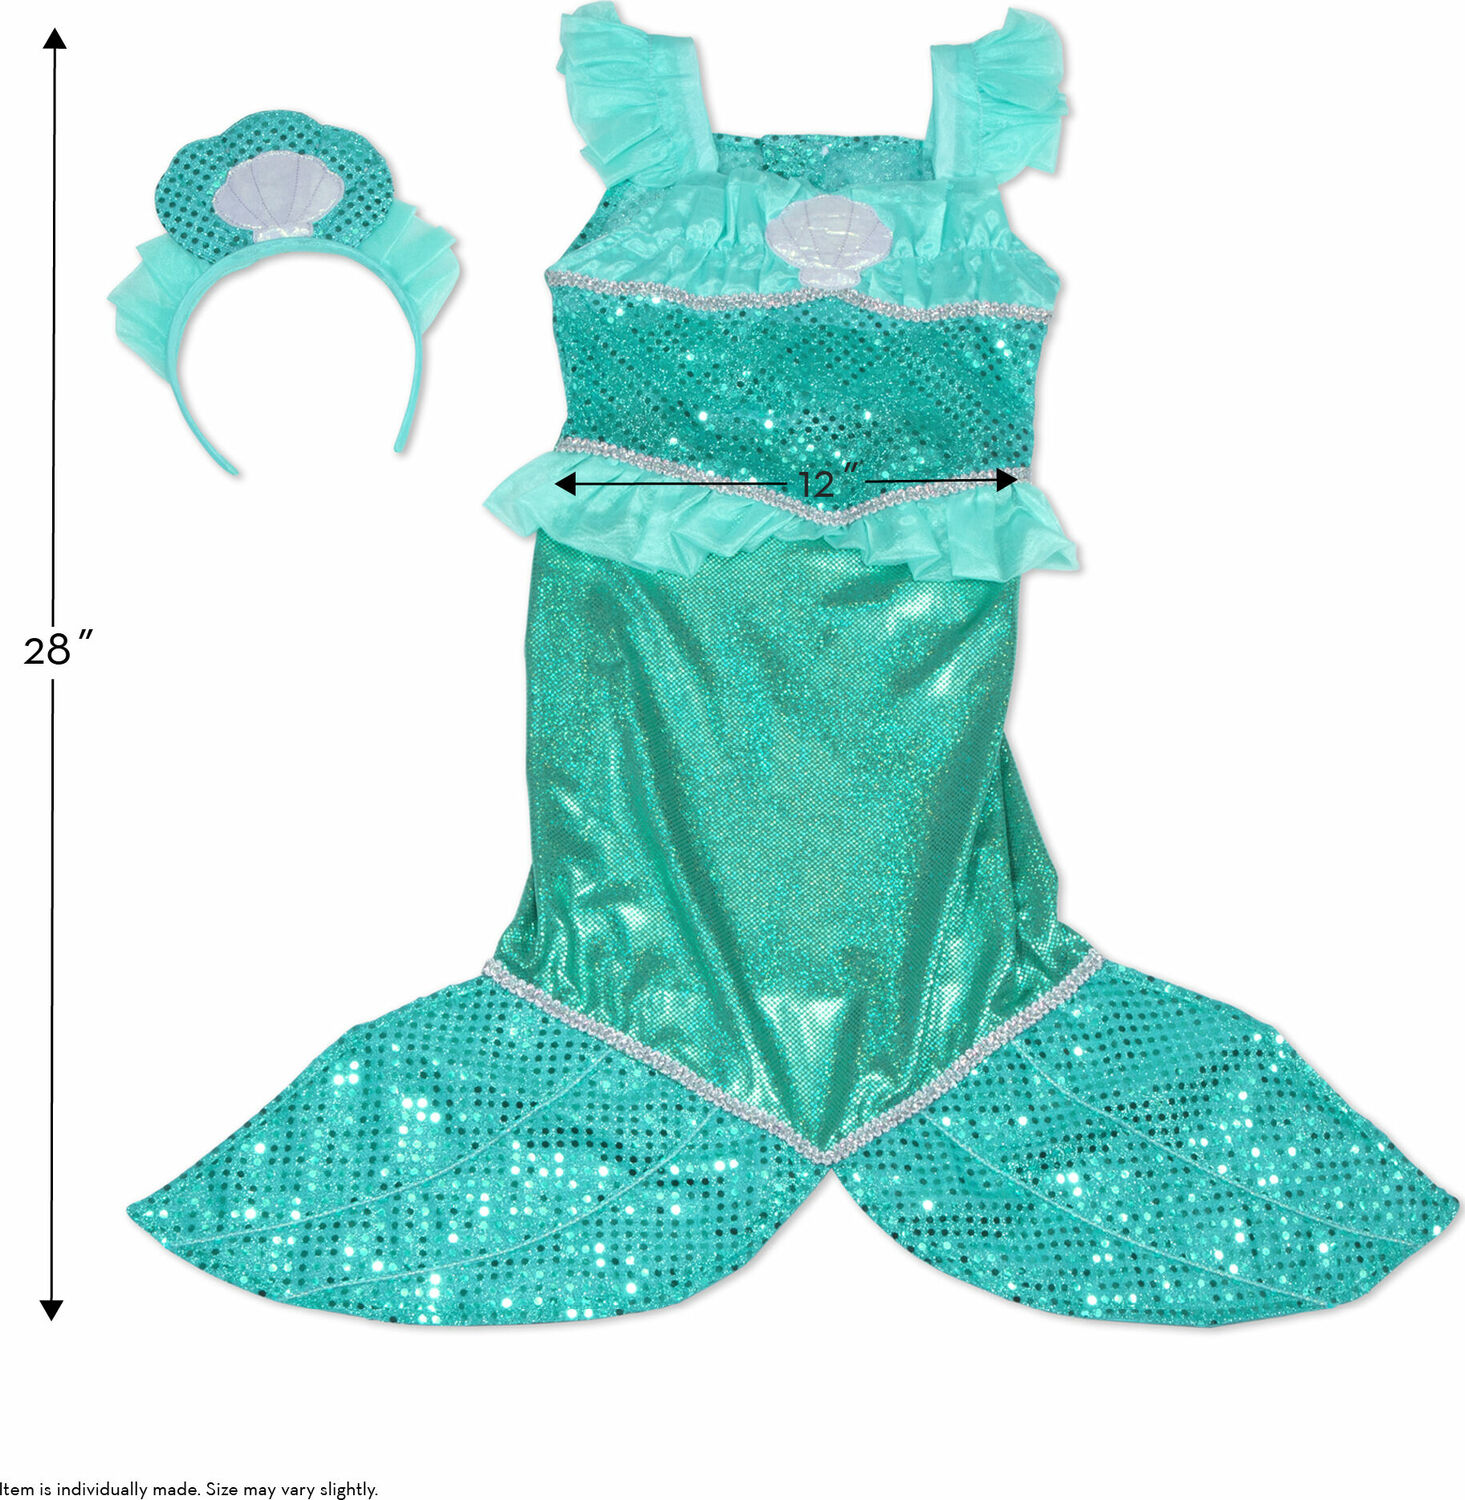 Mermaid Dress Up Grand Rabbits Toys In Boulder Colorado